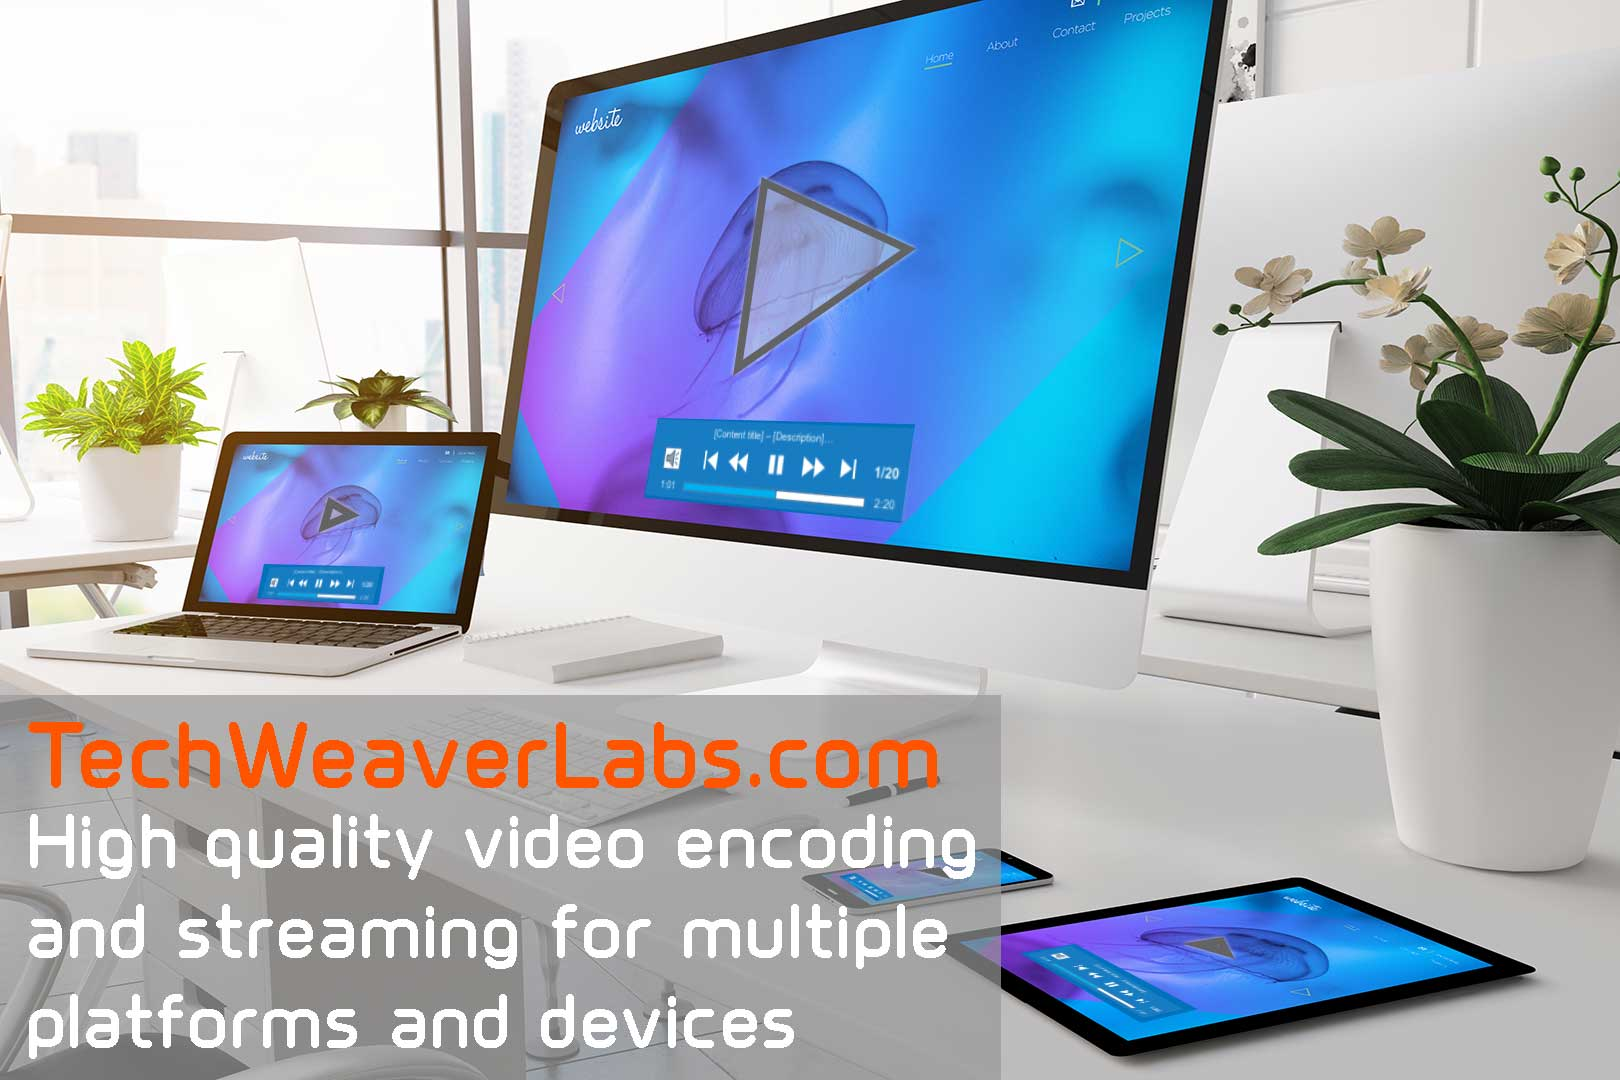 TechWeaverLabs video encoding and streaming